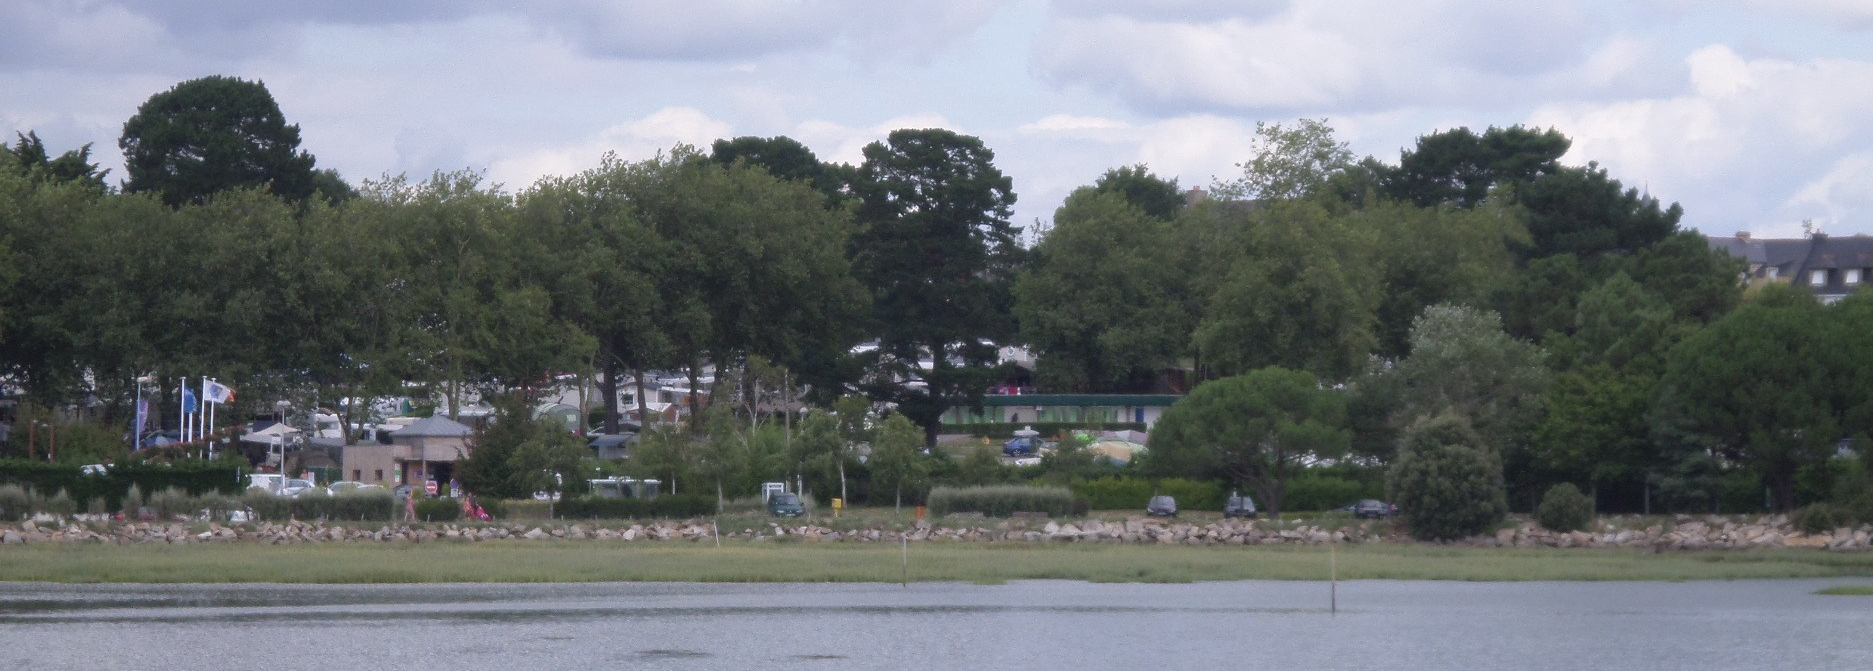 vannes-conleau-to-camping